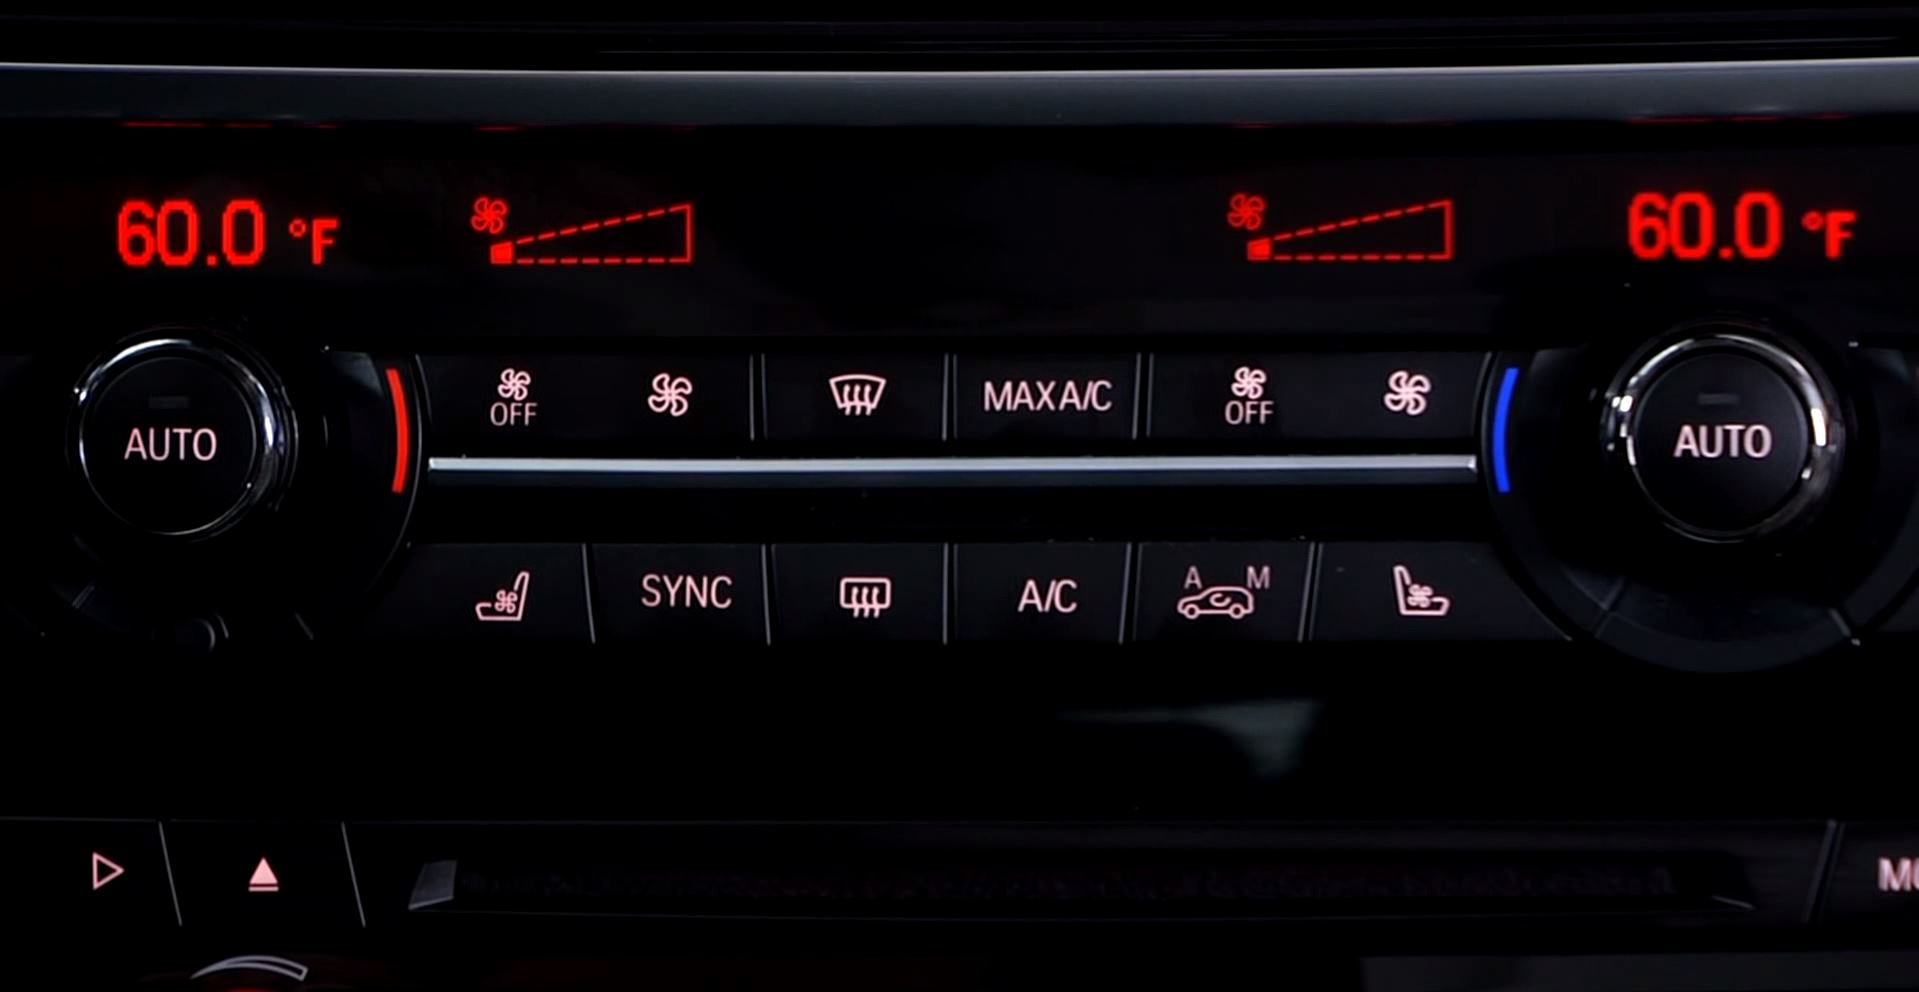 Automotive Air Conditioning >> 2014 BMW X5 HVAC Buttons Functions Explained - autoevolution